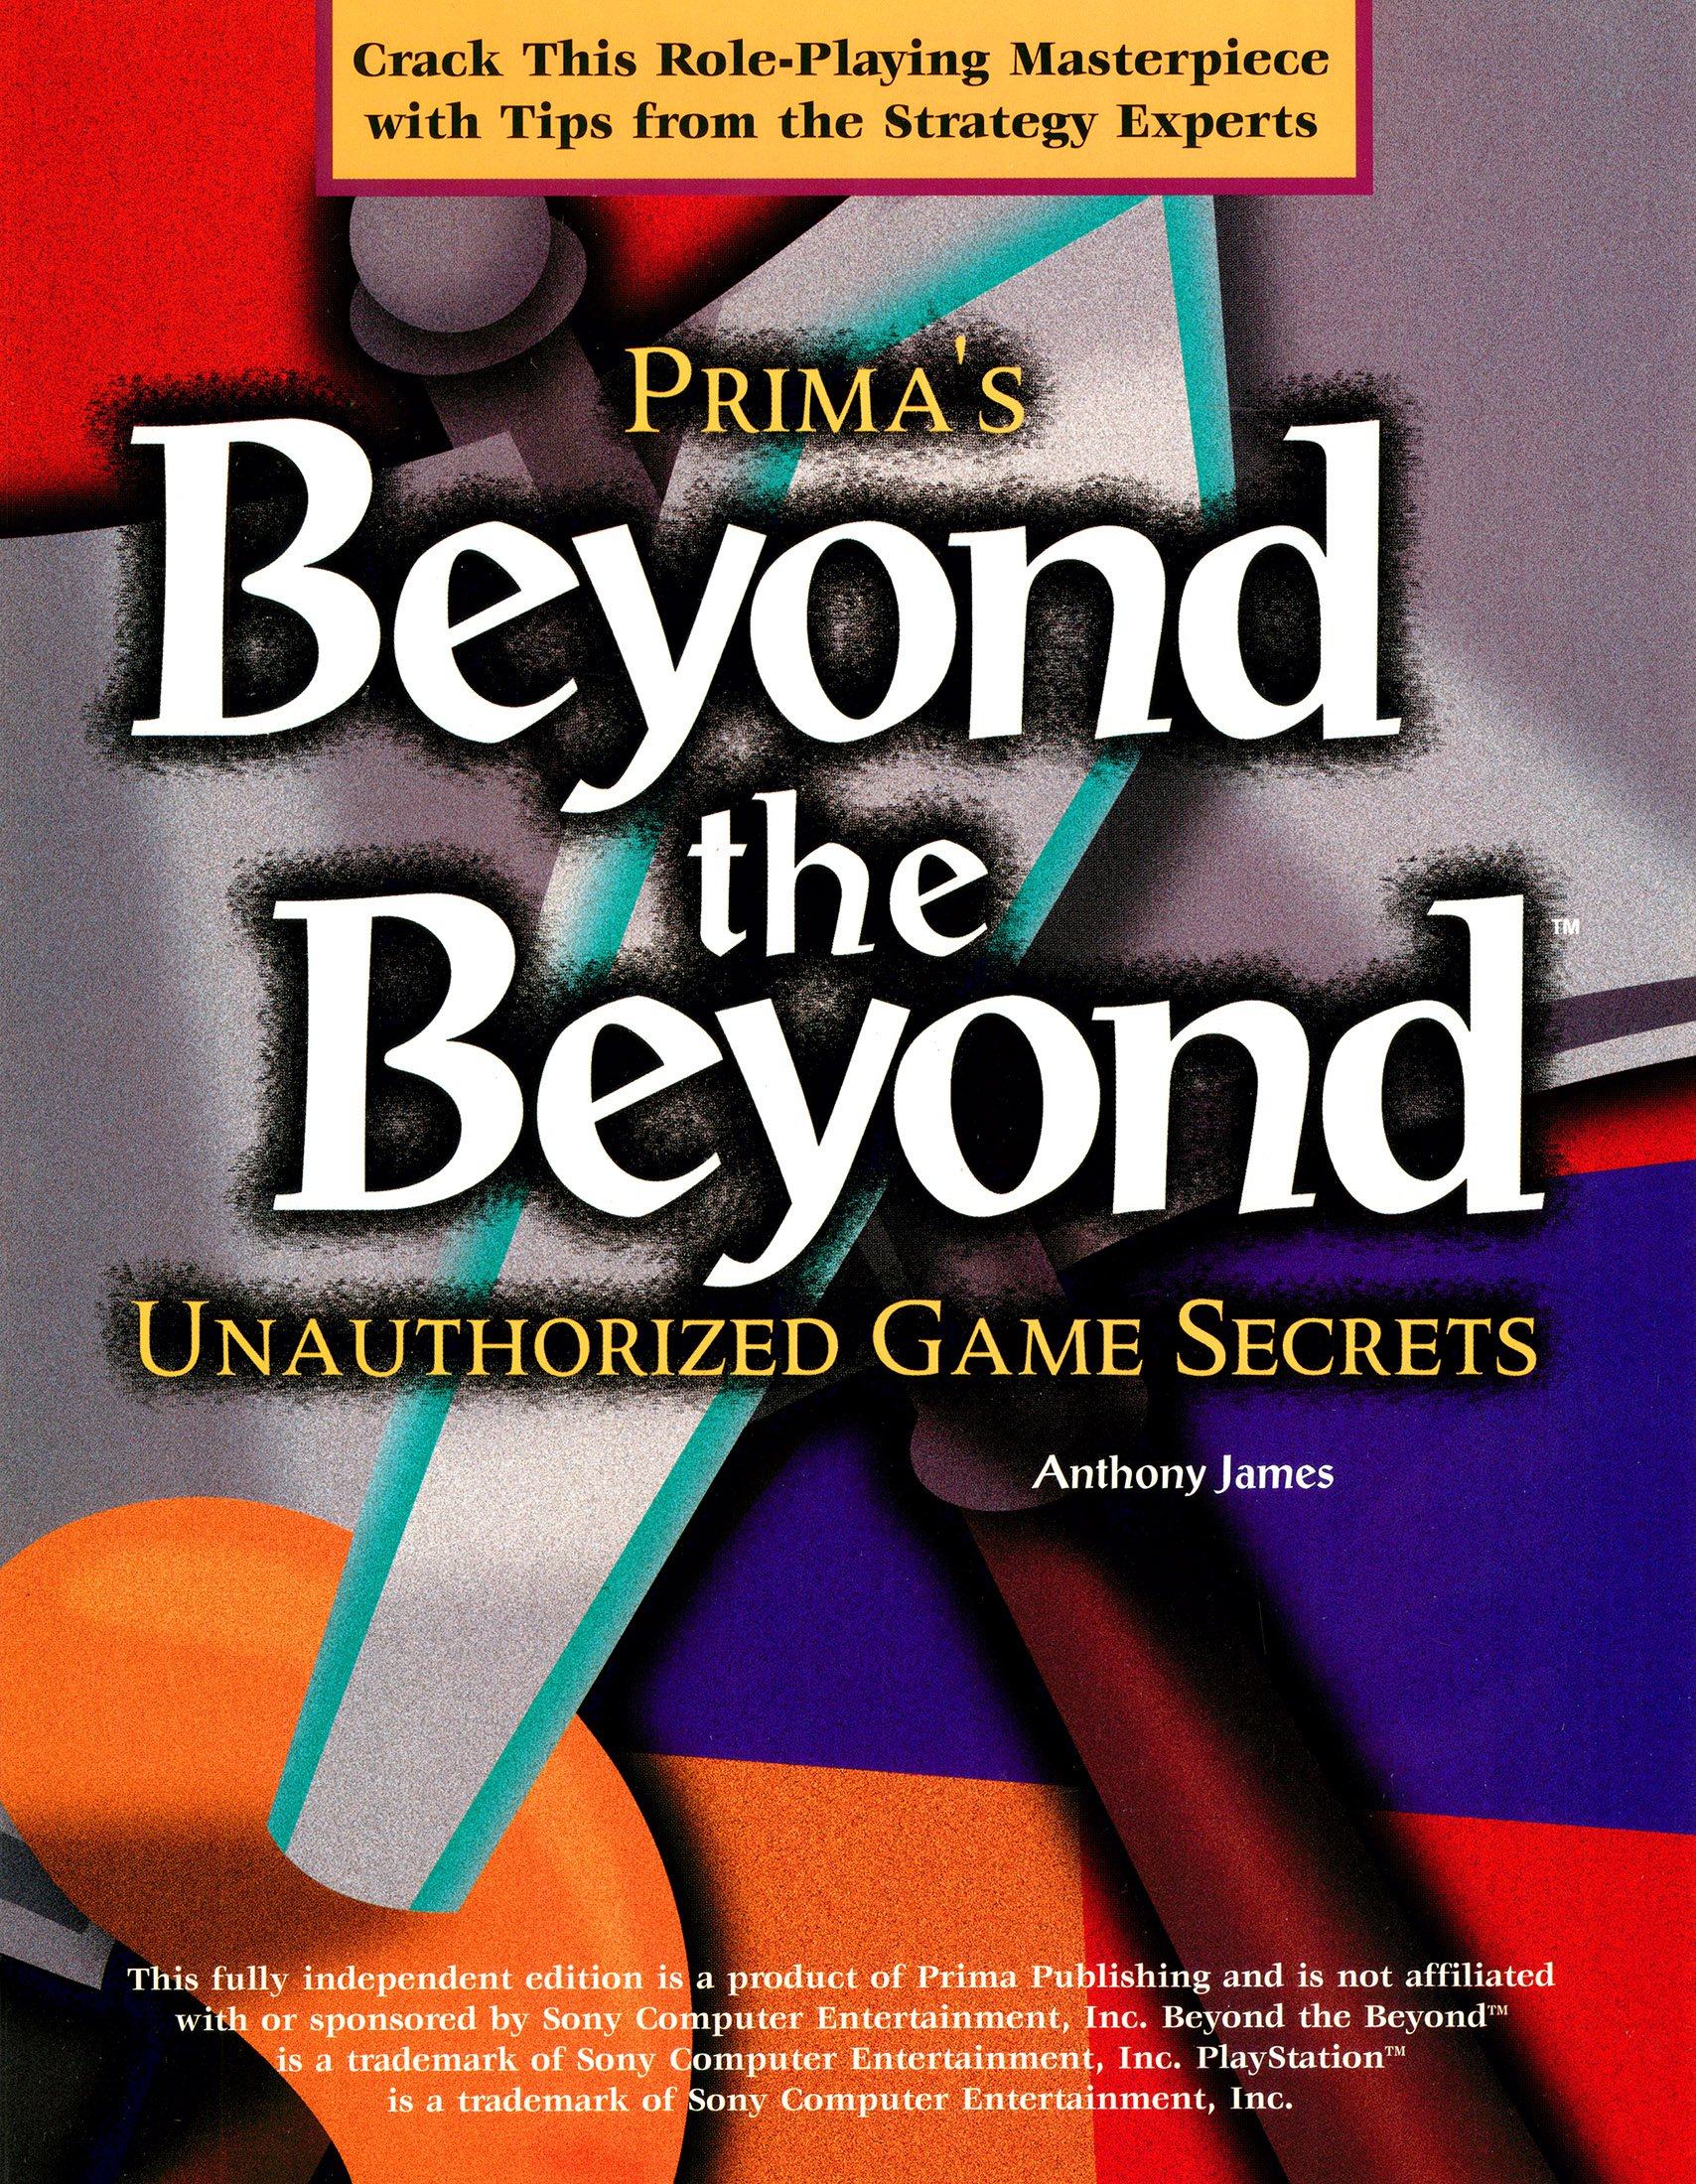 Beyond the Beyond - Unauthorized Game Secrets